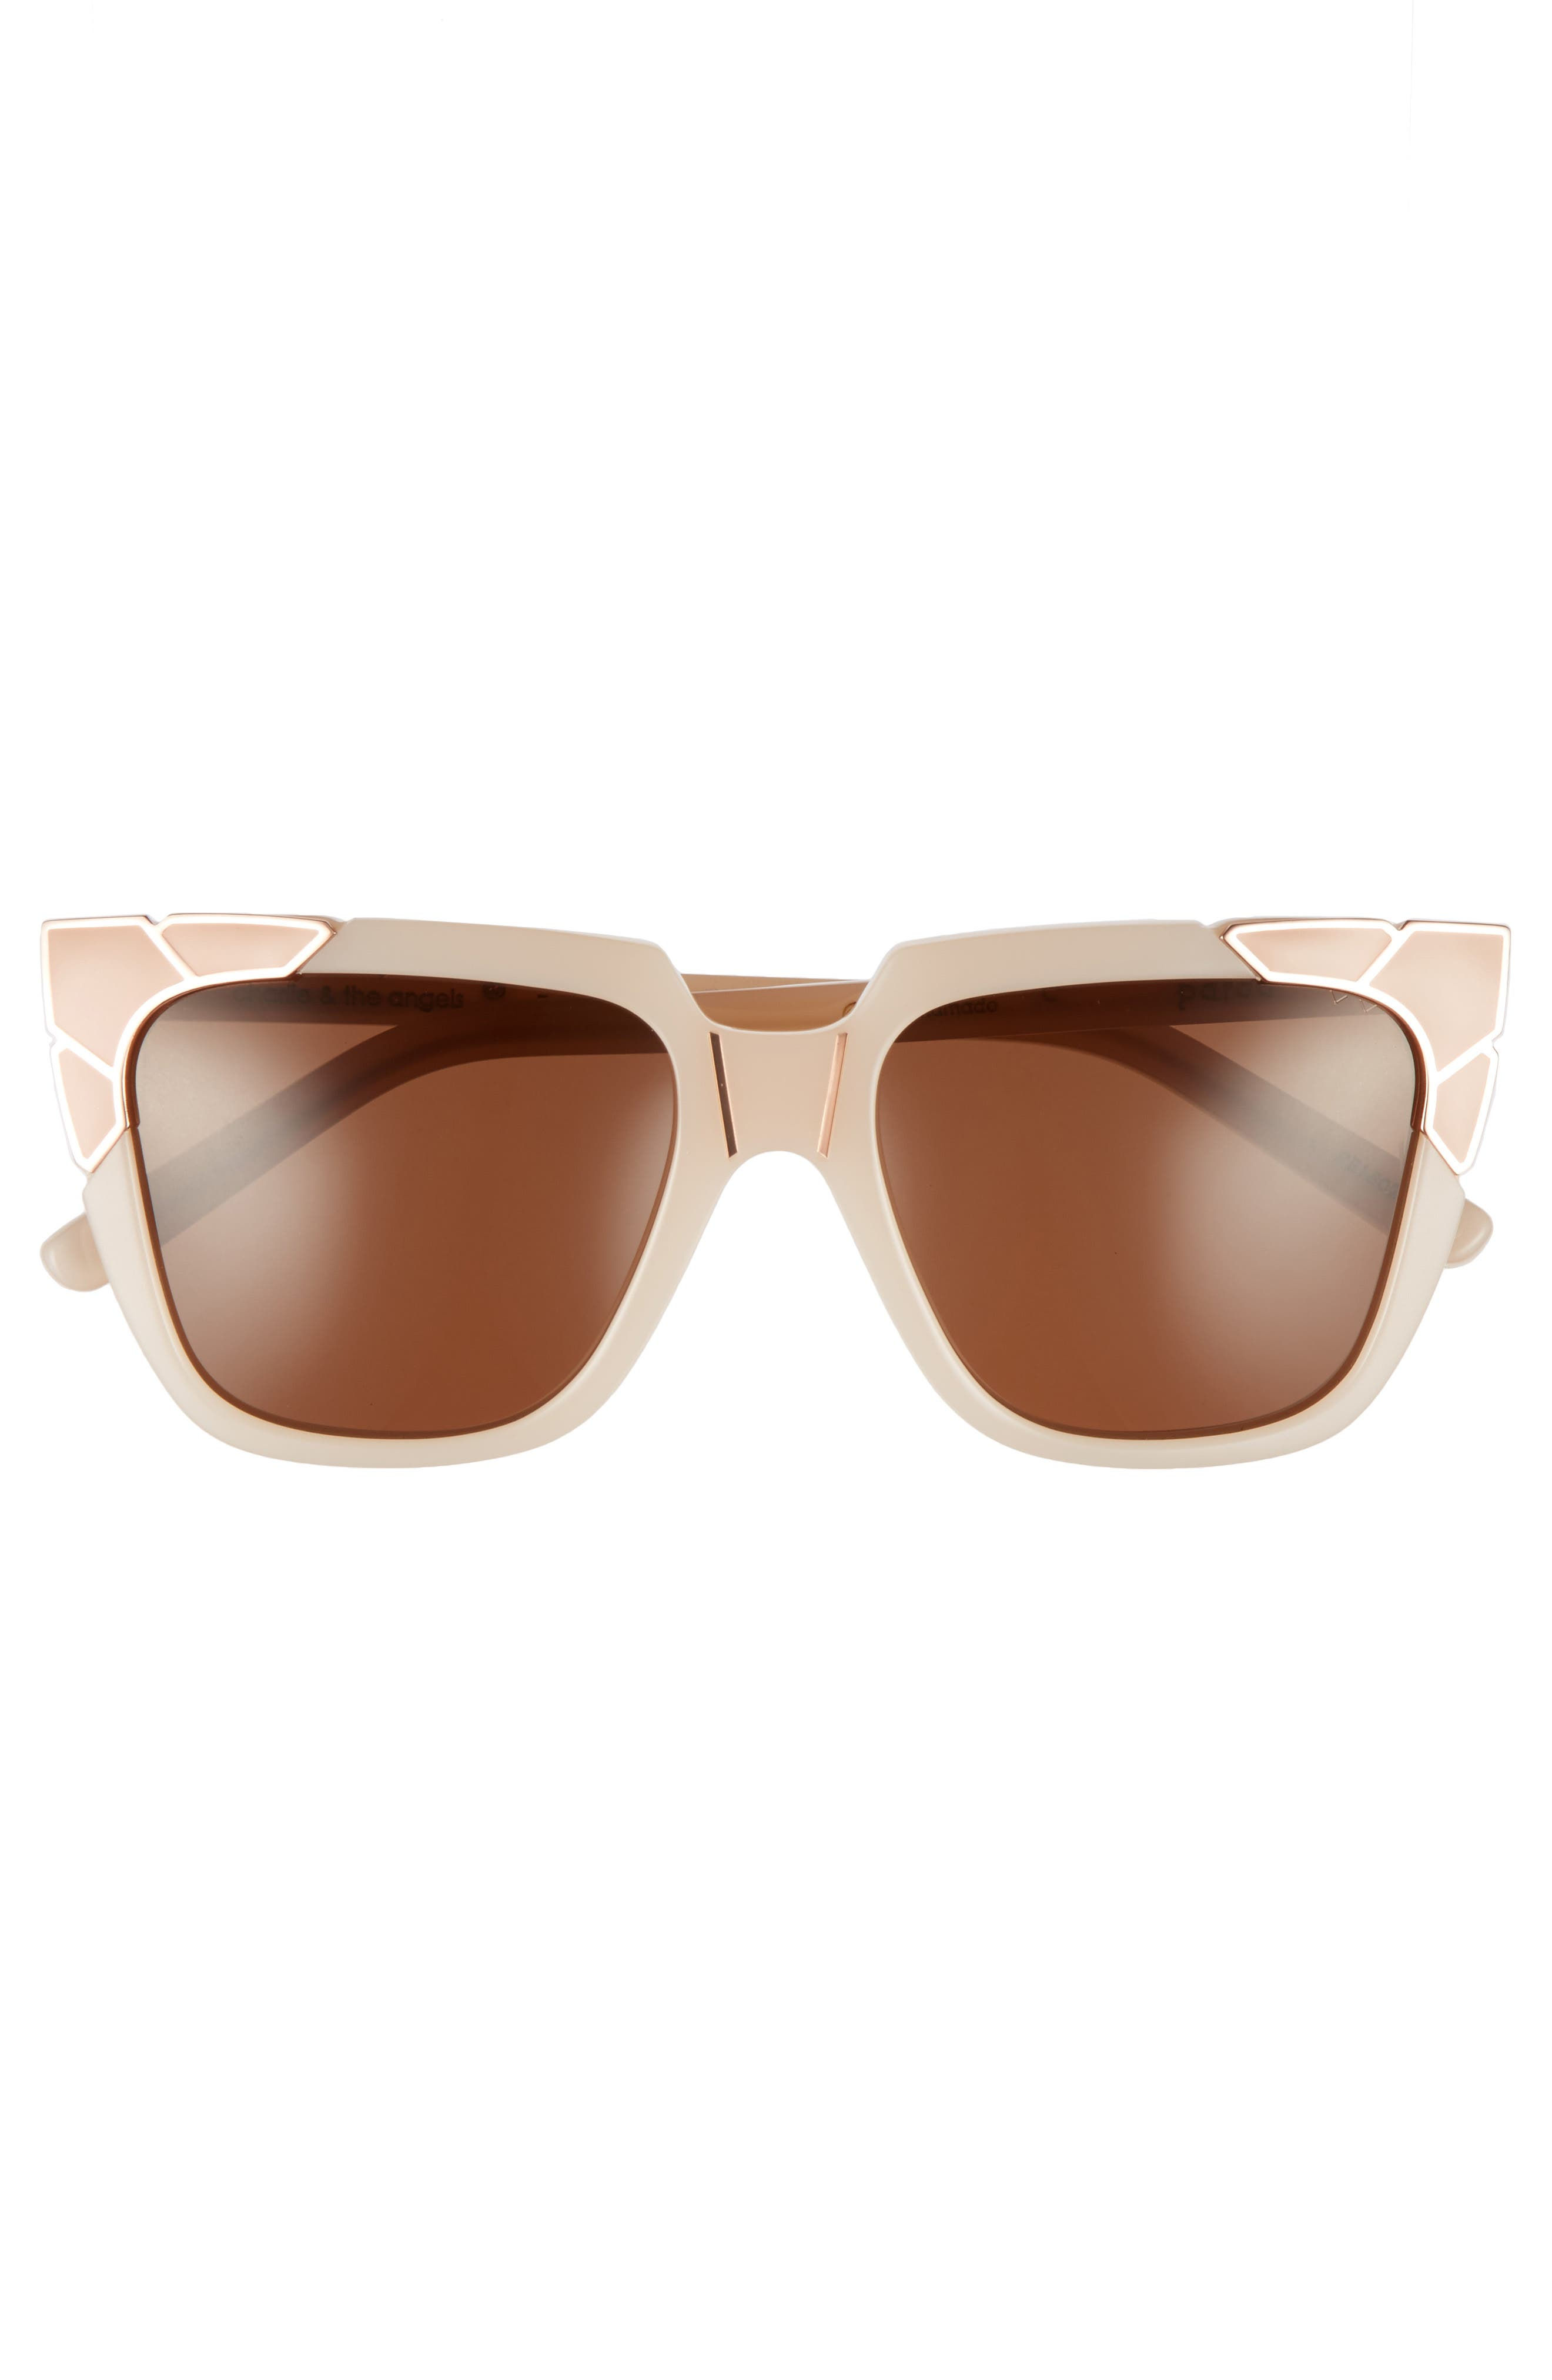 Charlie & the Angels 54mm Sunglasses,                             Alternate thumbnail 3, color,                             800